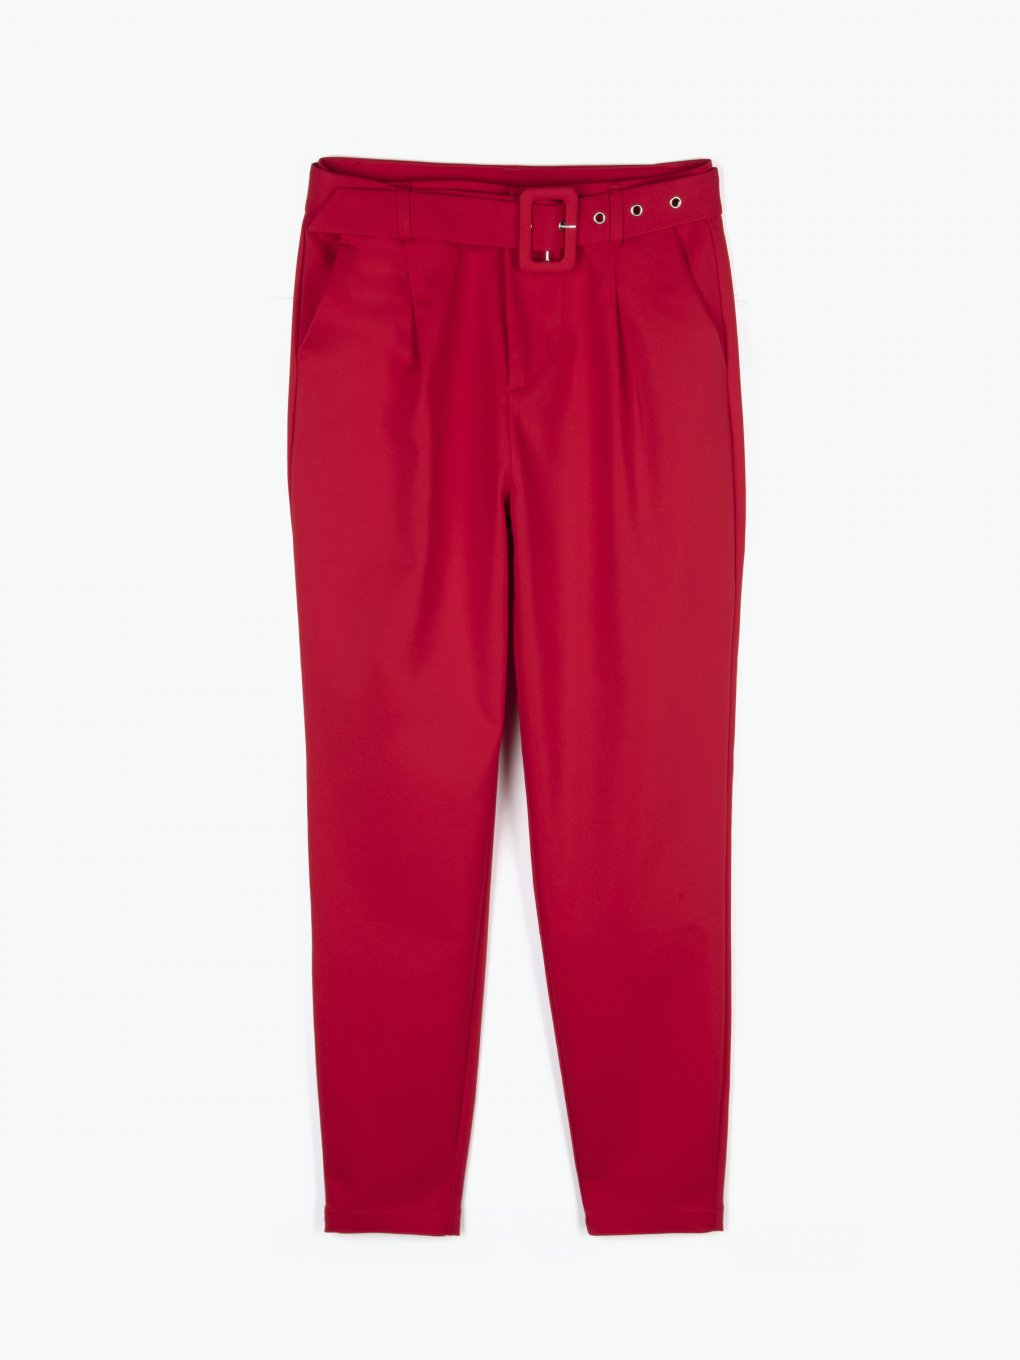 High waist carrot fit pants with belt and pockets